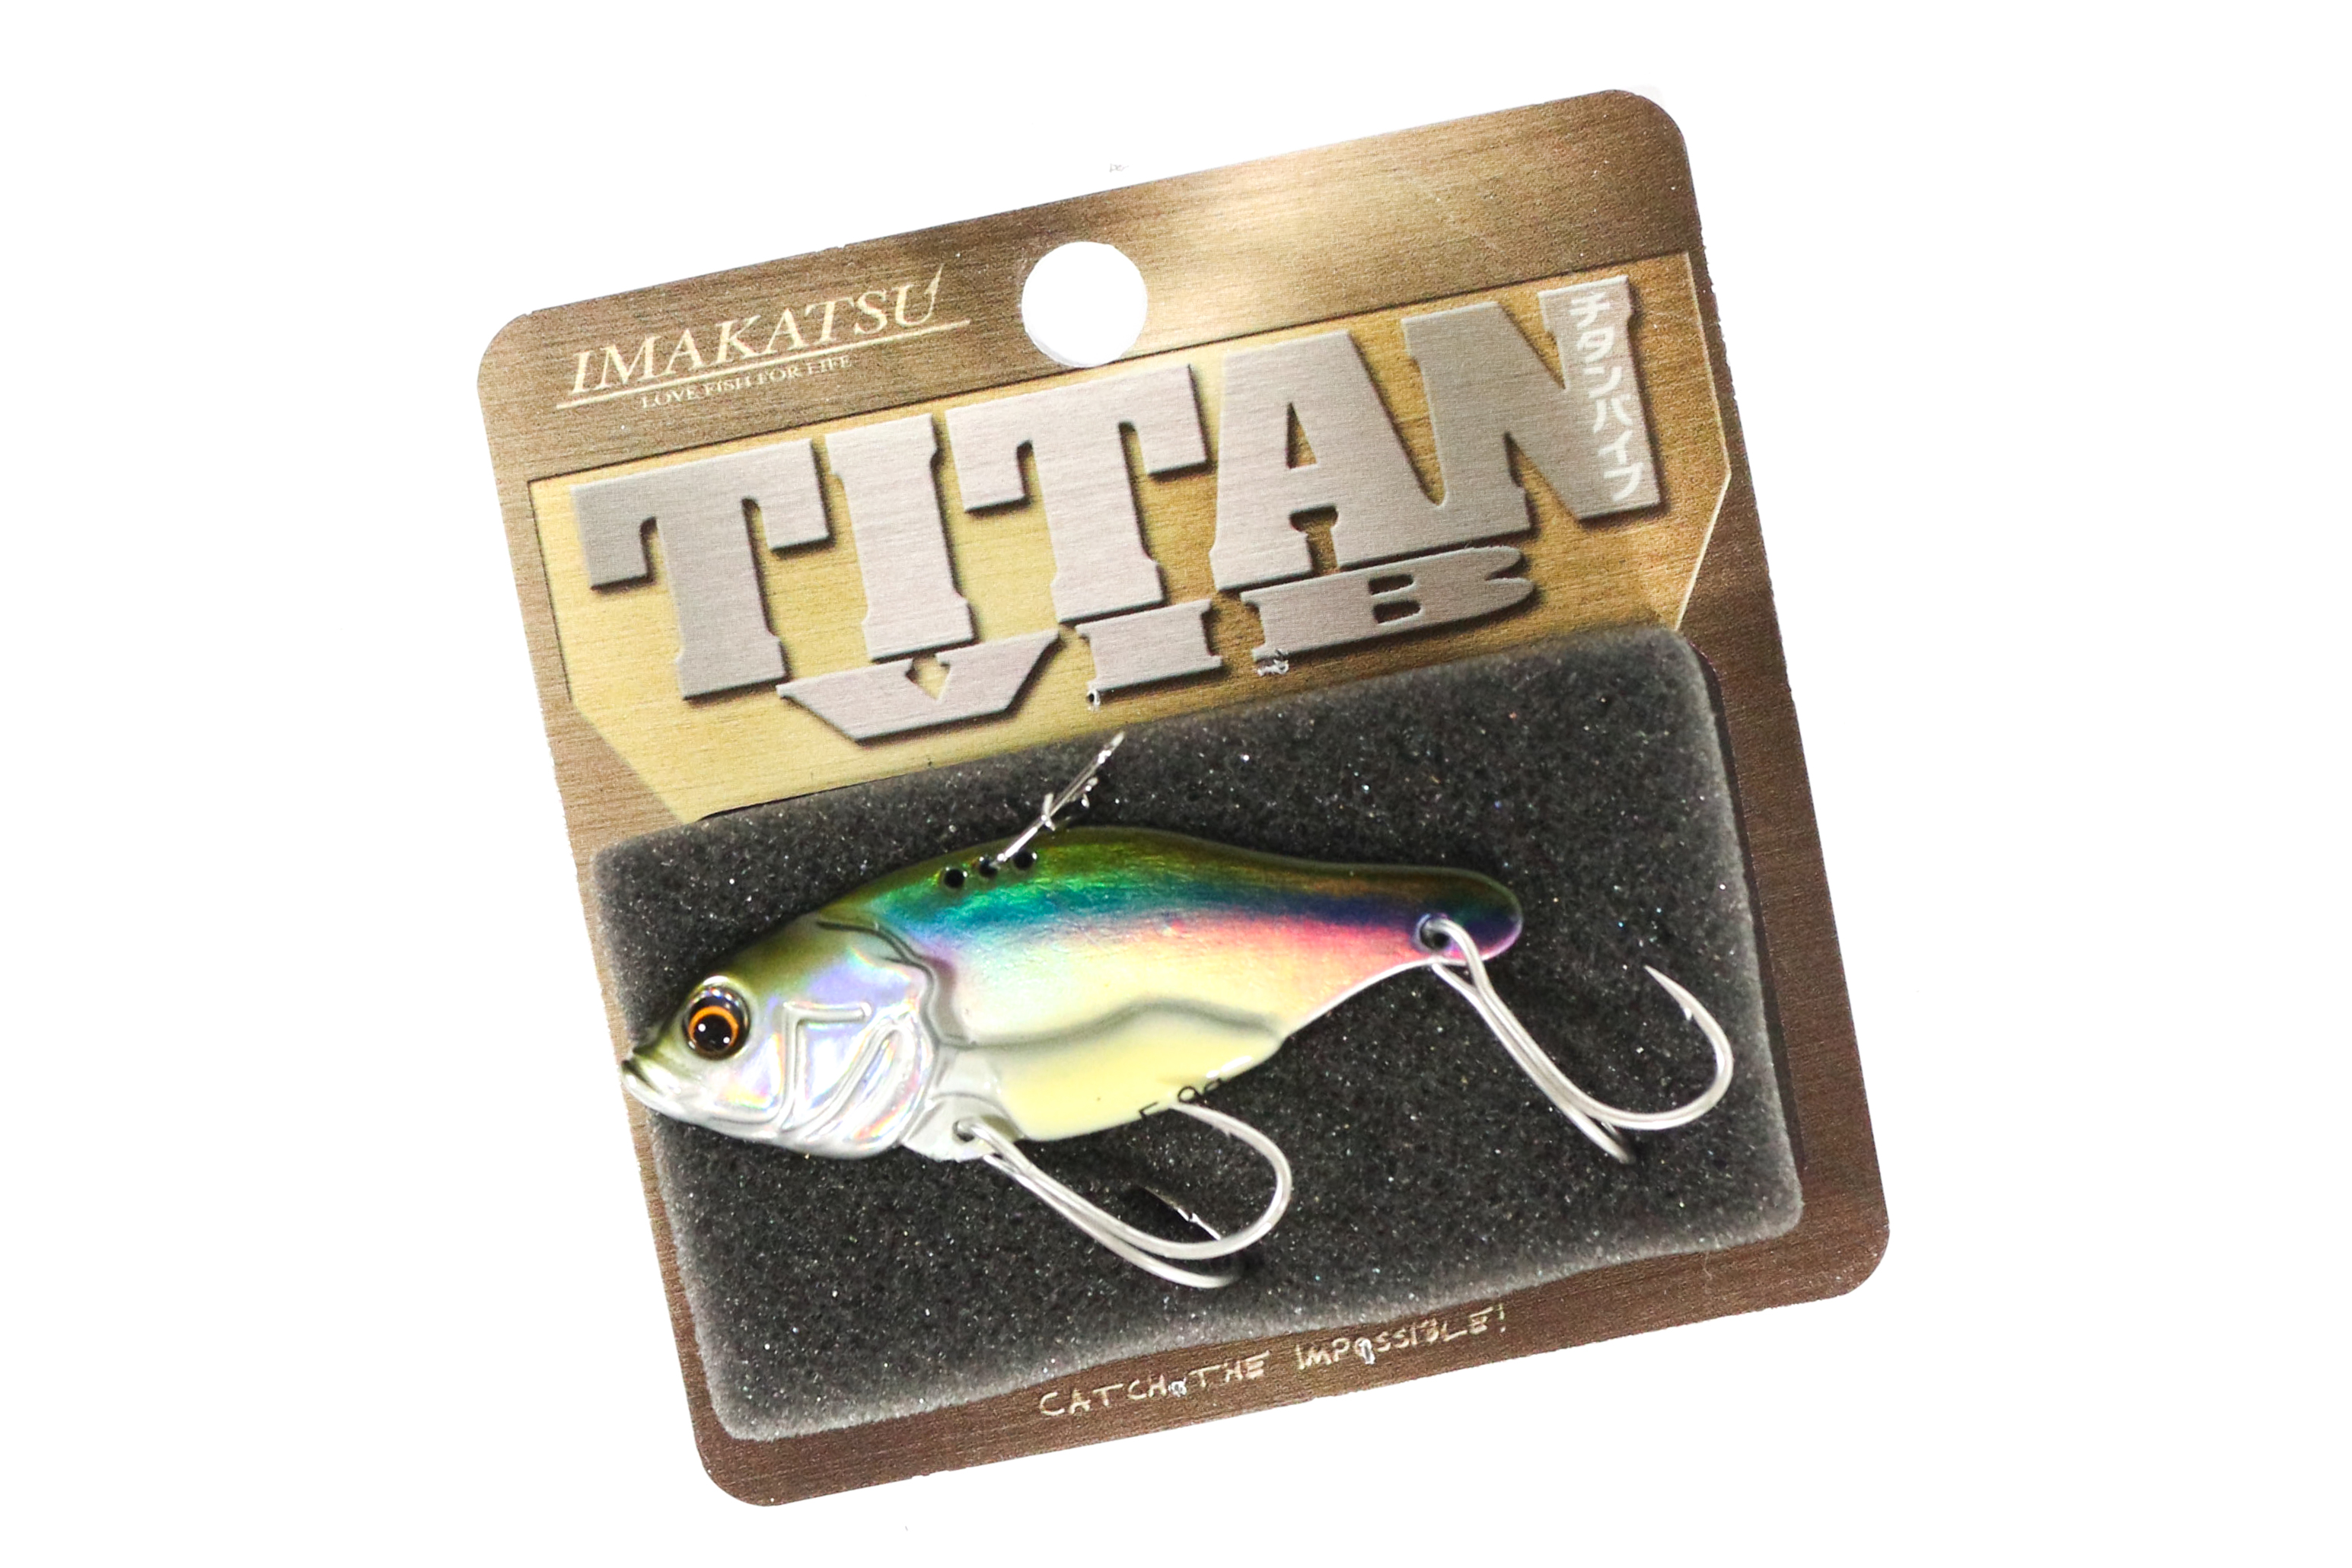 Sale Imakatsu Titan Vib Metal Vibration 9 grams Sinking Lure MV-21 (5254)